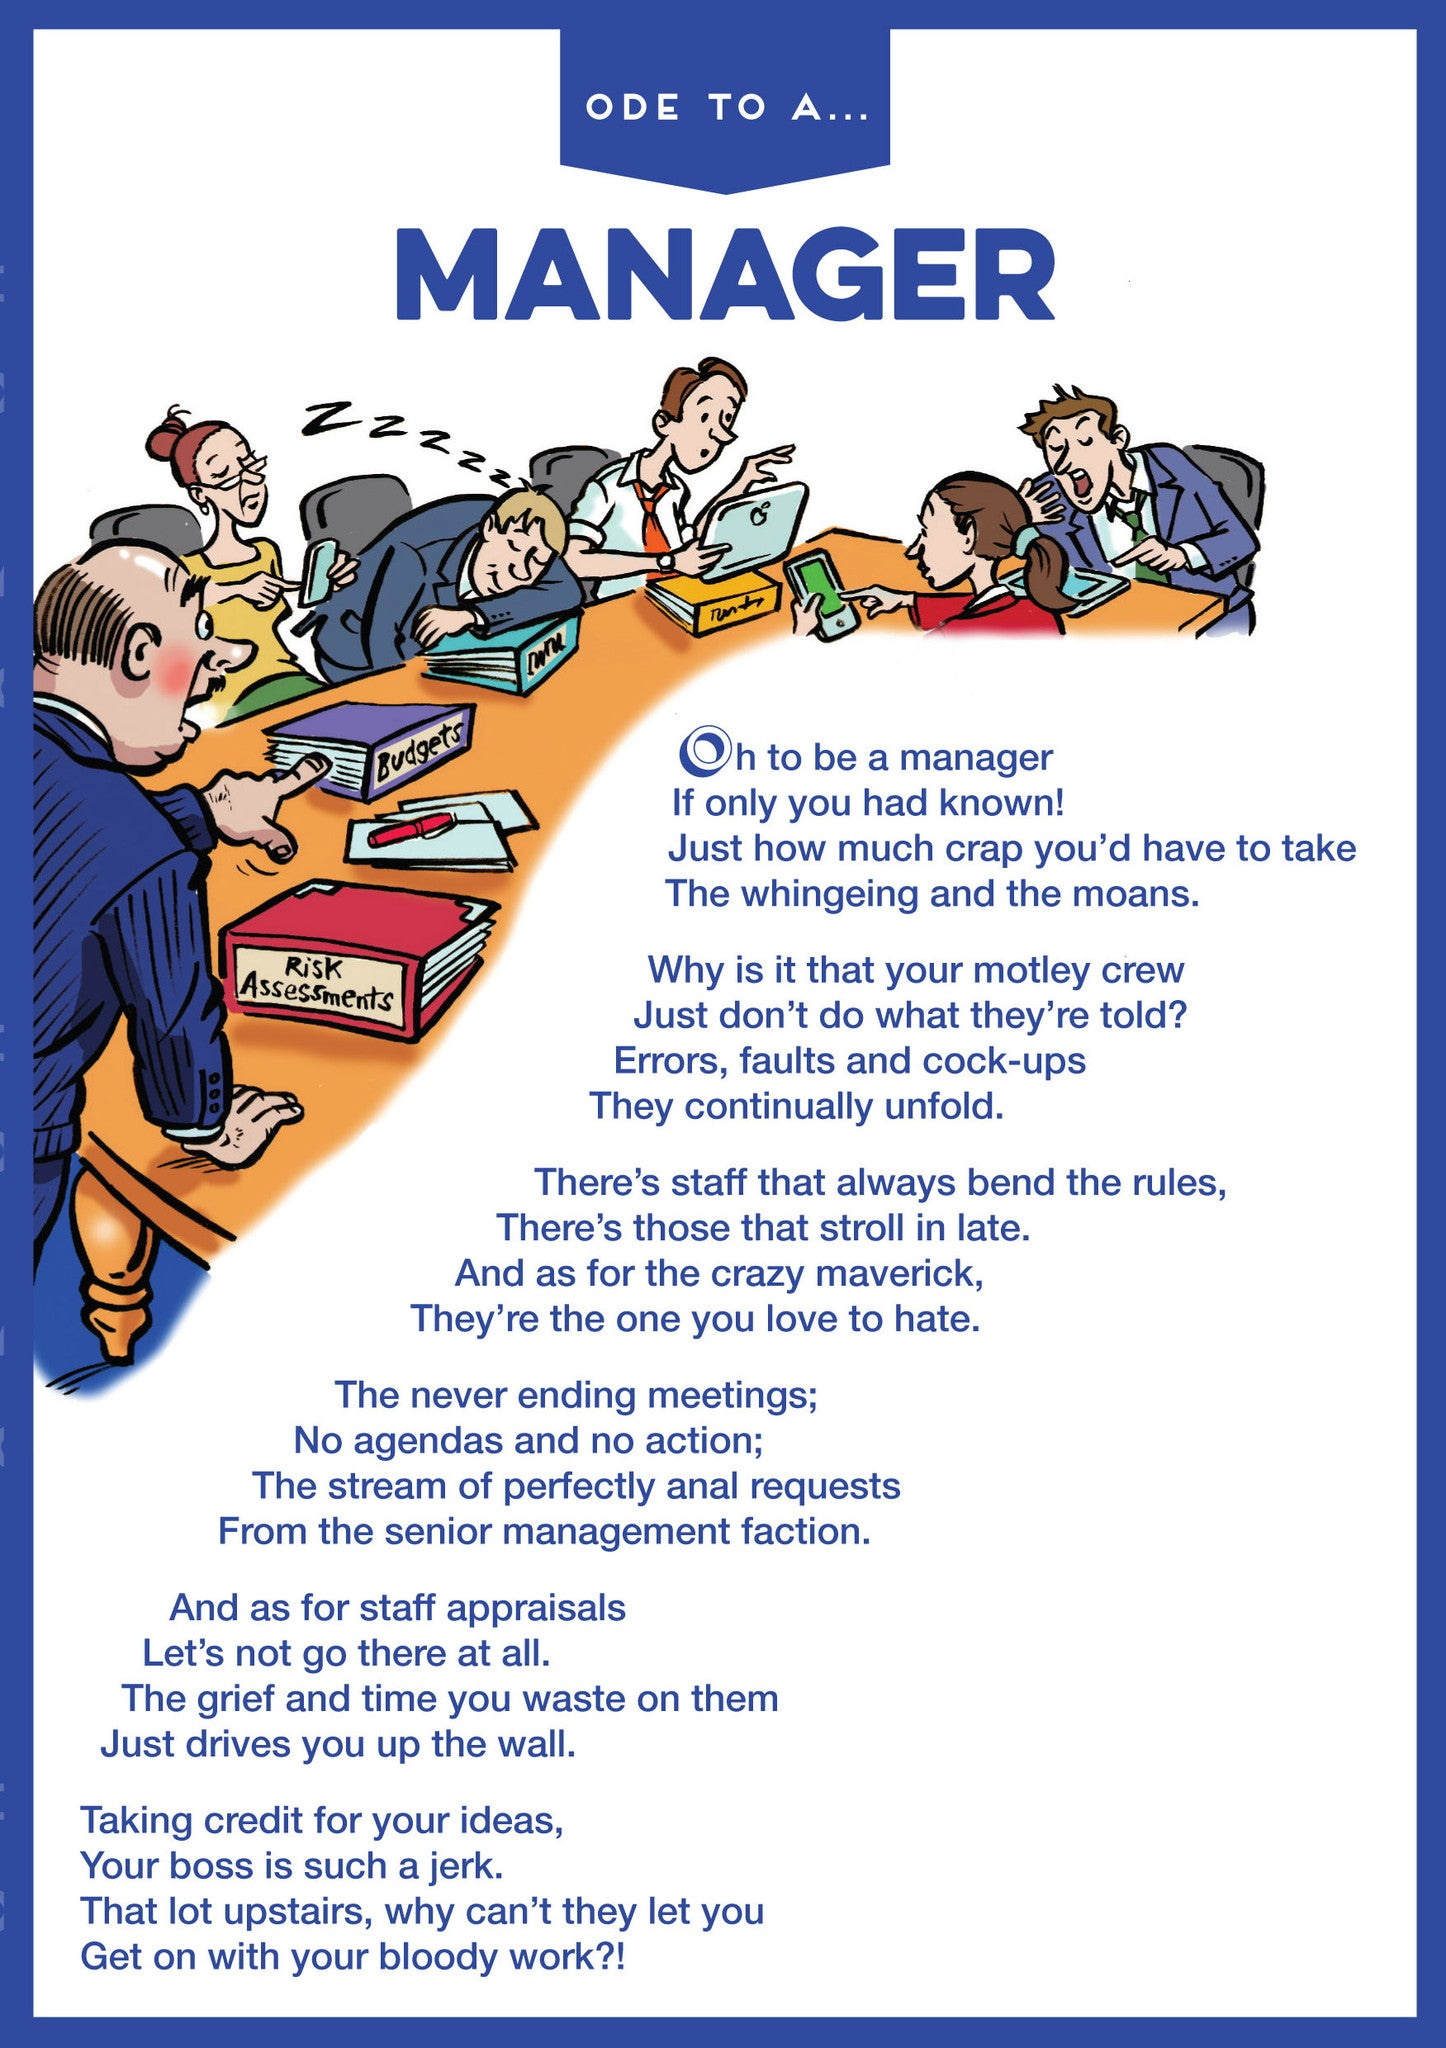 ode to a manager greetings card in jest in jest